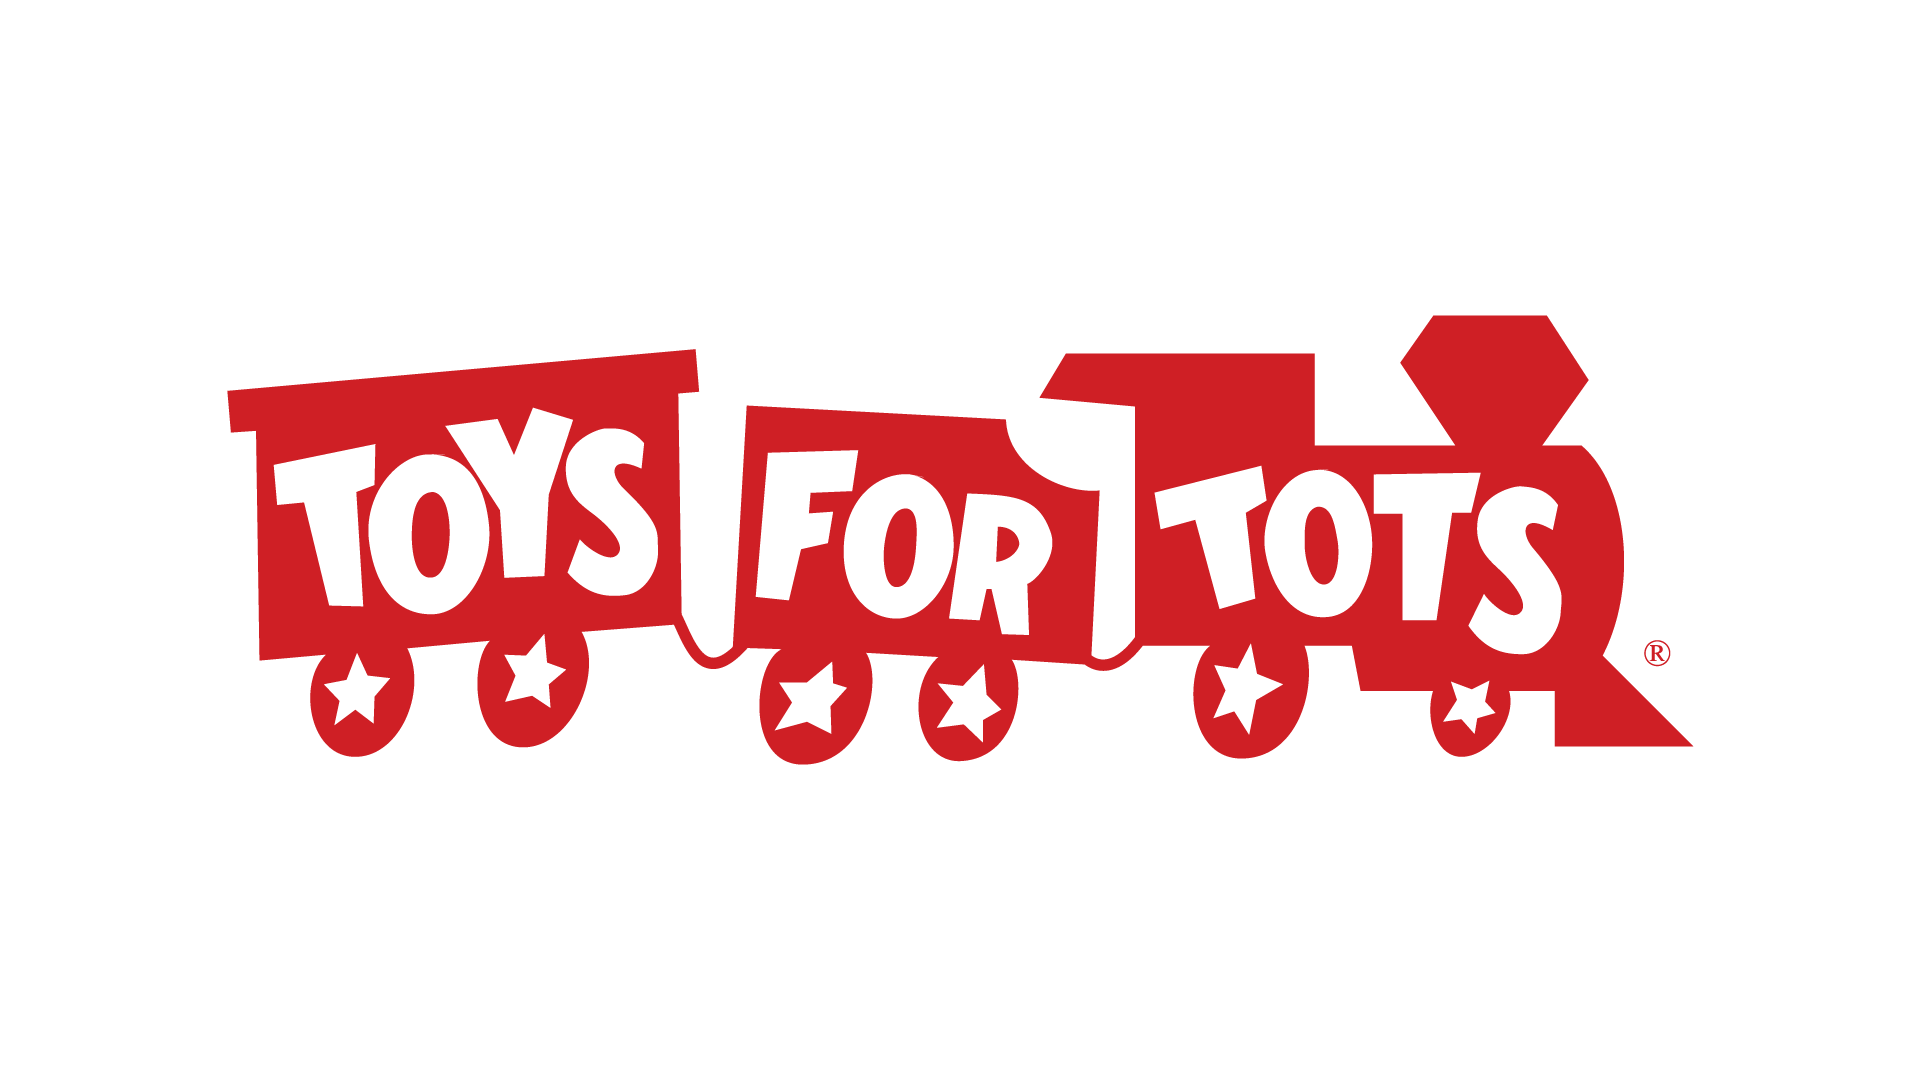 toys for tots logos rh logolynx com Large Toys for Tots Logo Vector Marine Corps Toys for Tots Logo Vector